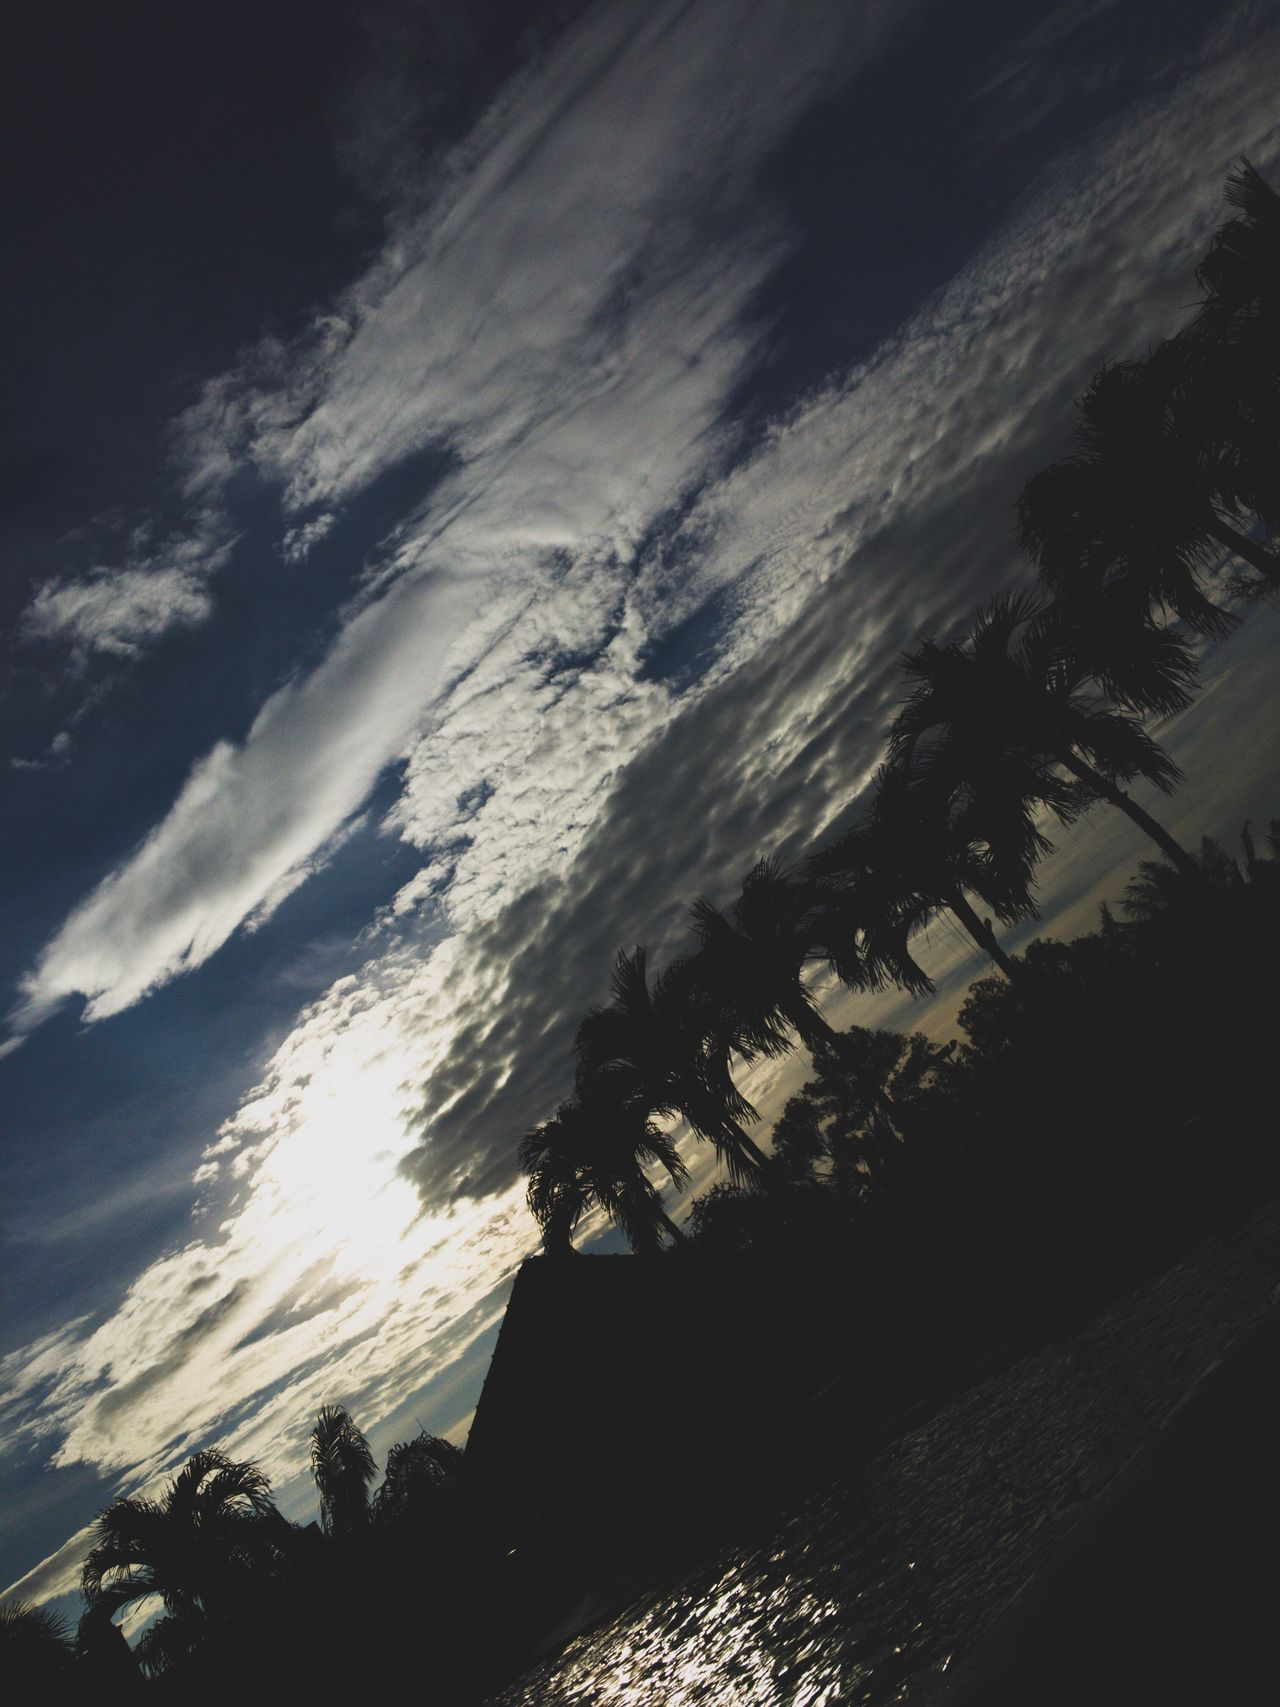 Sunset Nature Sky Tree Low Angle View No People Scenics Tranquility Beauty In Nature Outdoors Day Cold Temperature